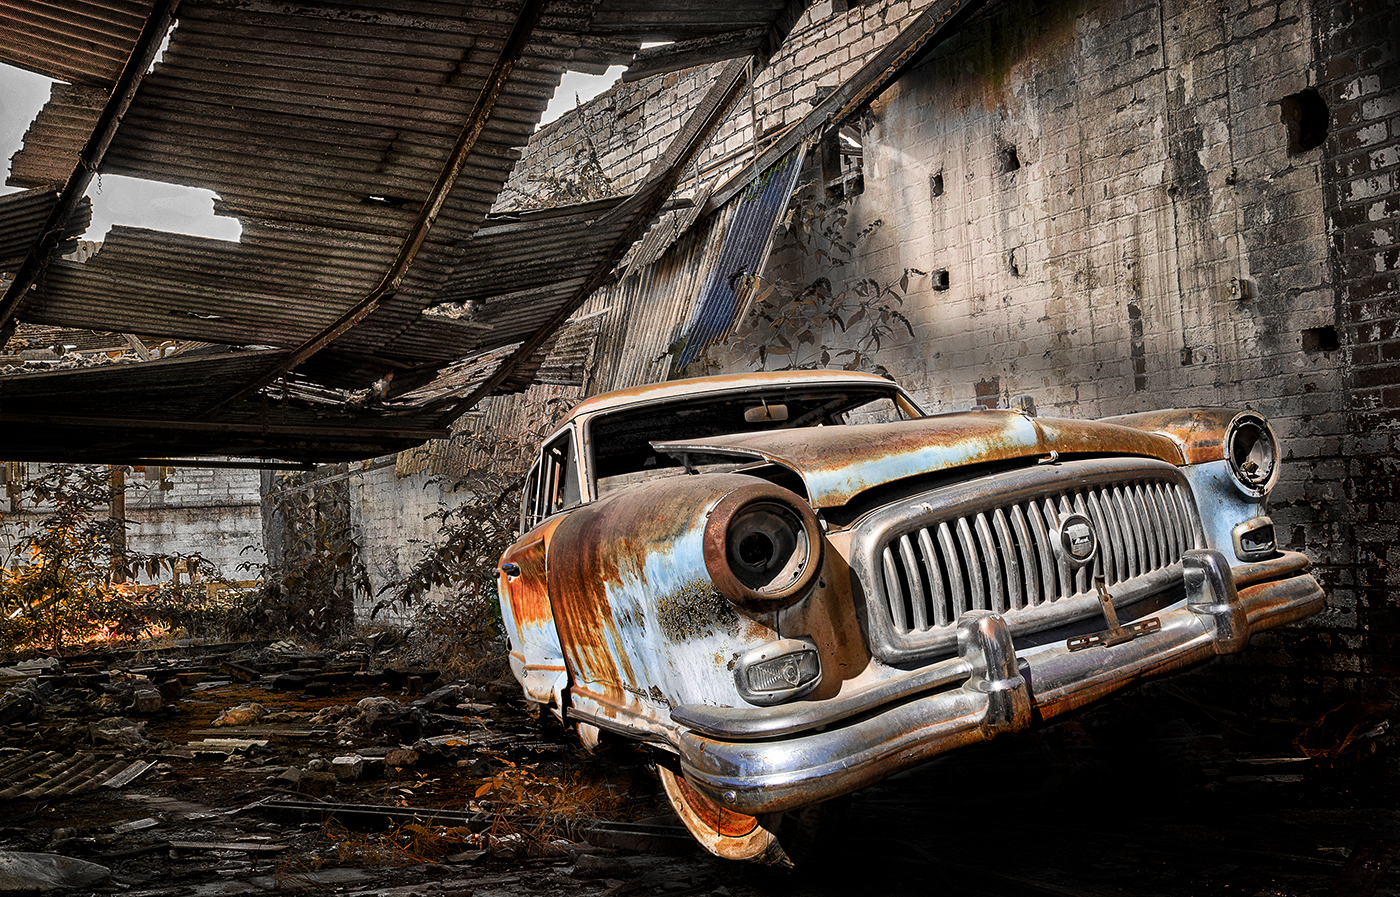 16_1314R3_030 B_Catch 3_Old car_Hugh Wilkinson.jpg